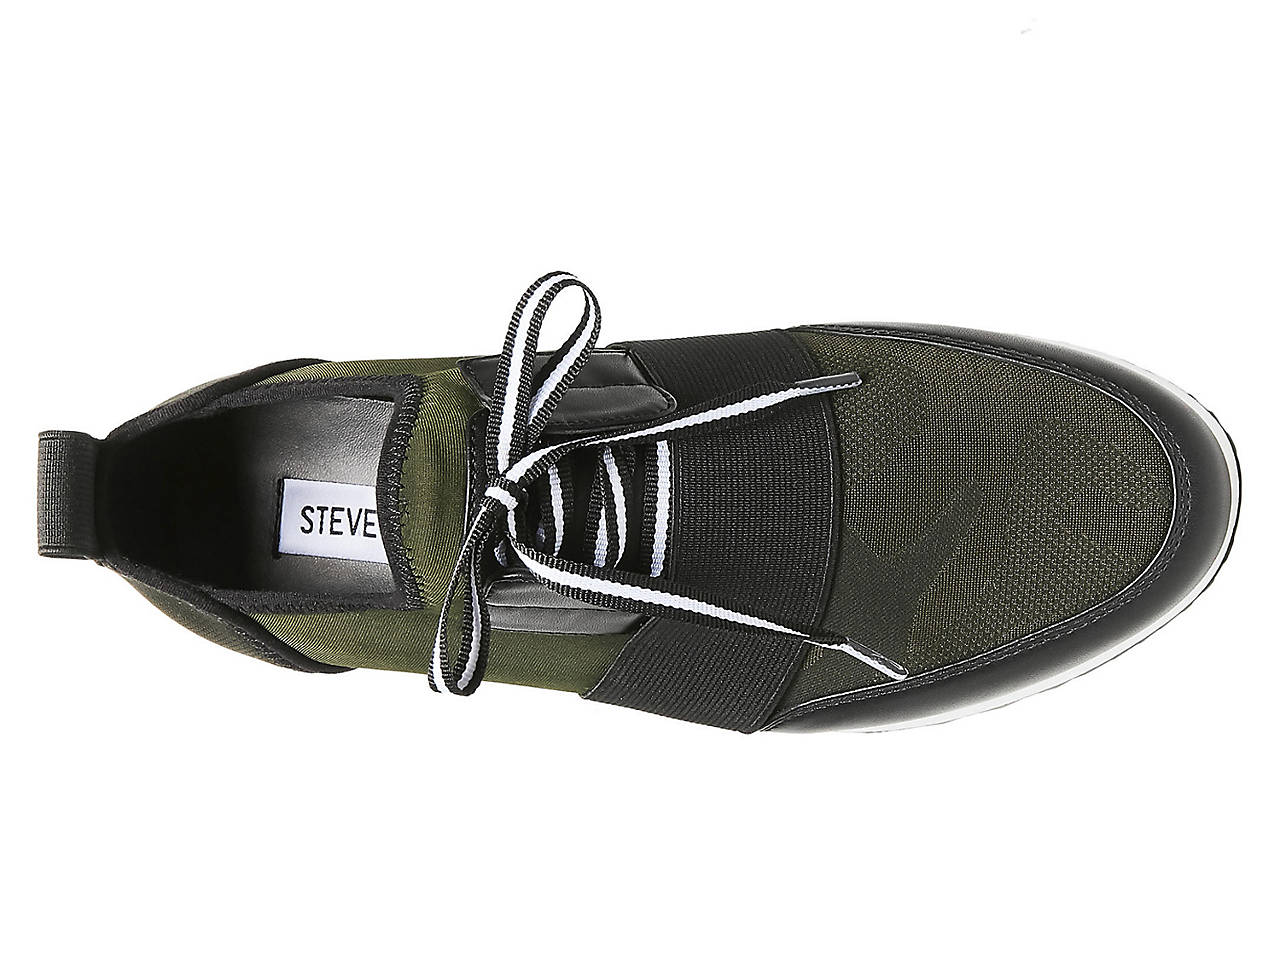 e343eed1a45 Steve Madden Antics Sneaker Women s Shoes